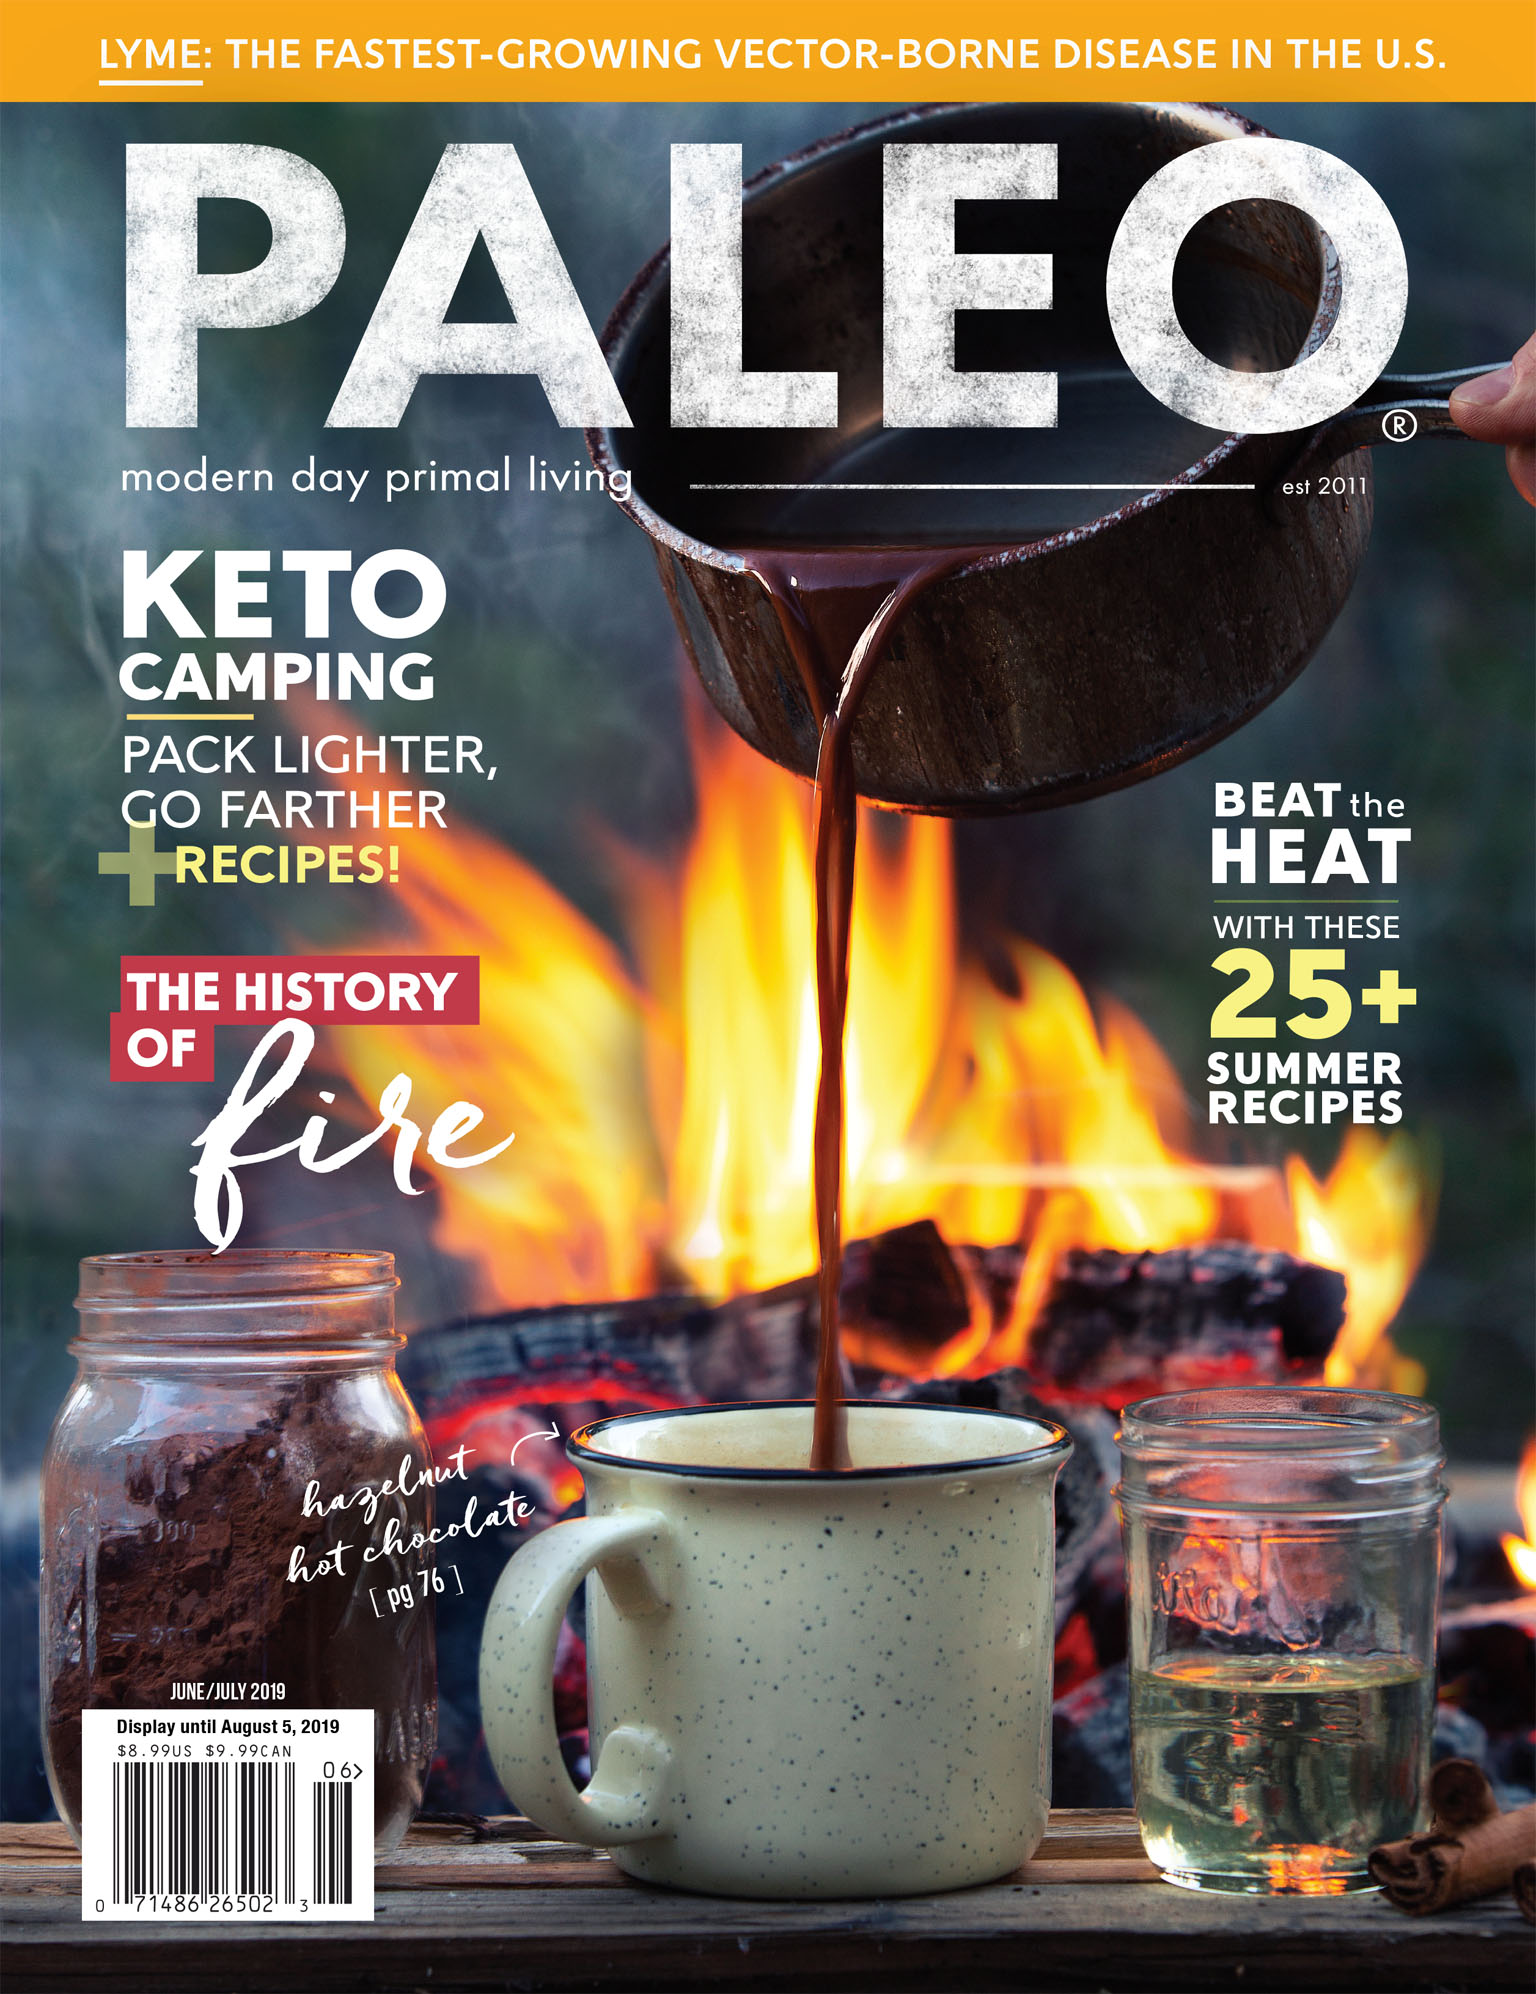 Cover Photo for Paleo Magazine, June 2019 - Keto Hot Chocolate